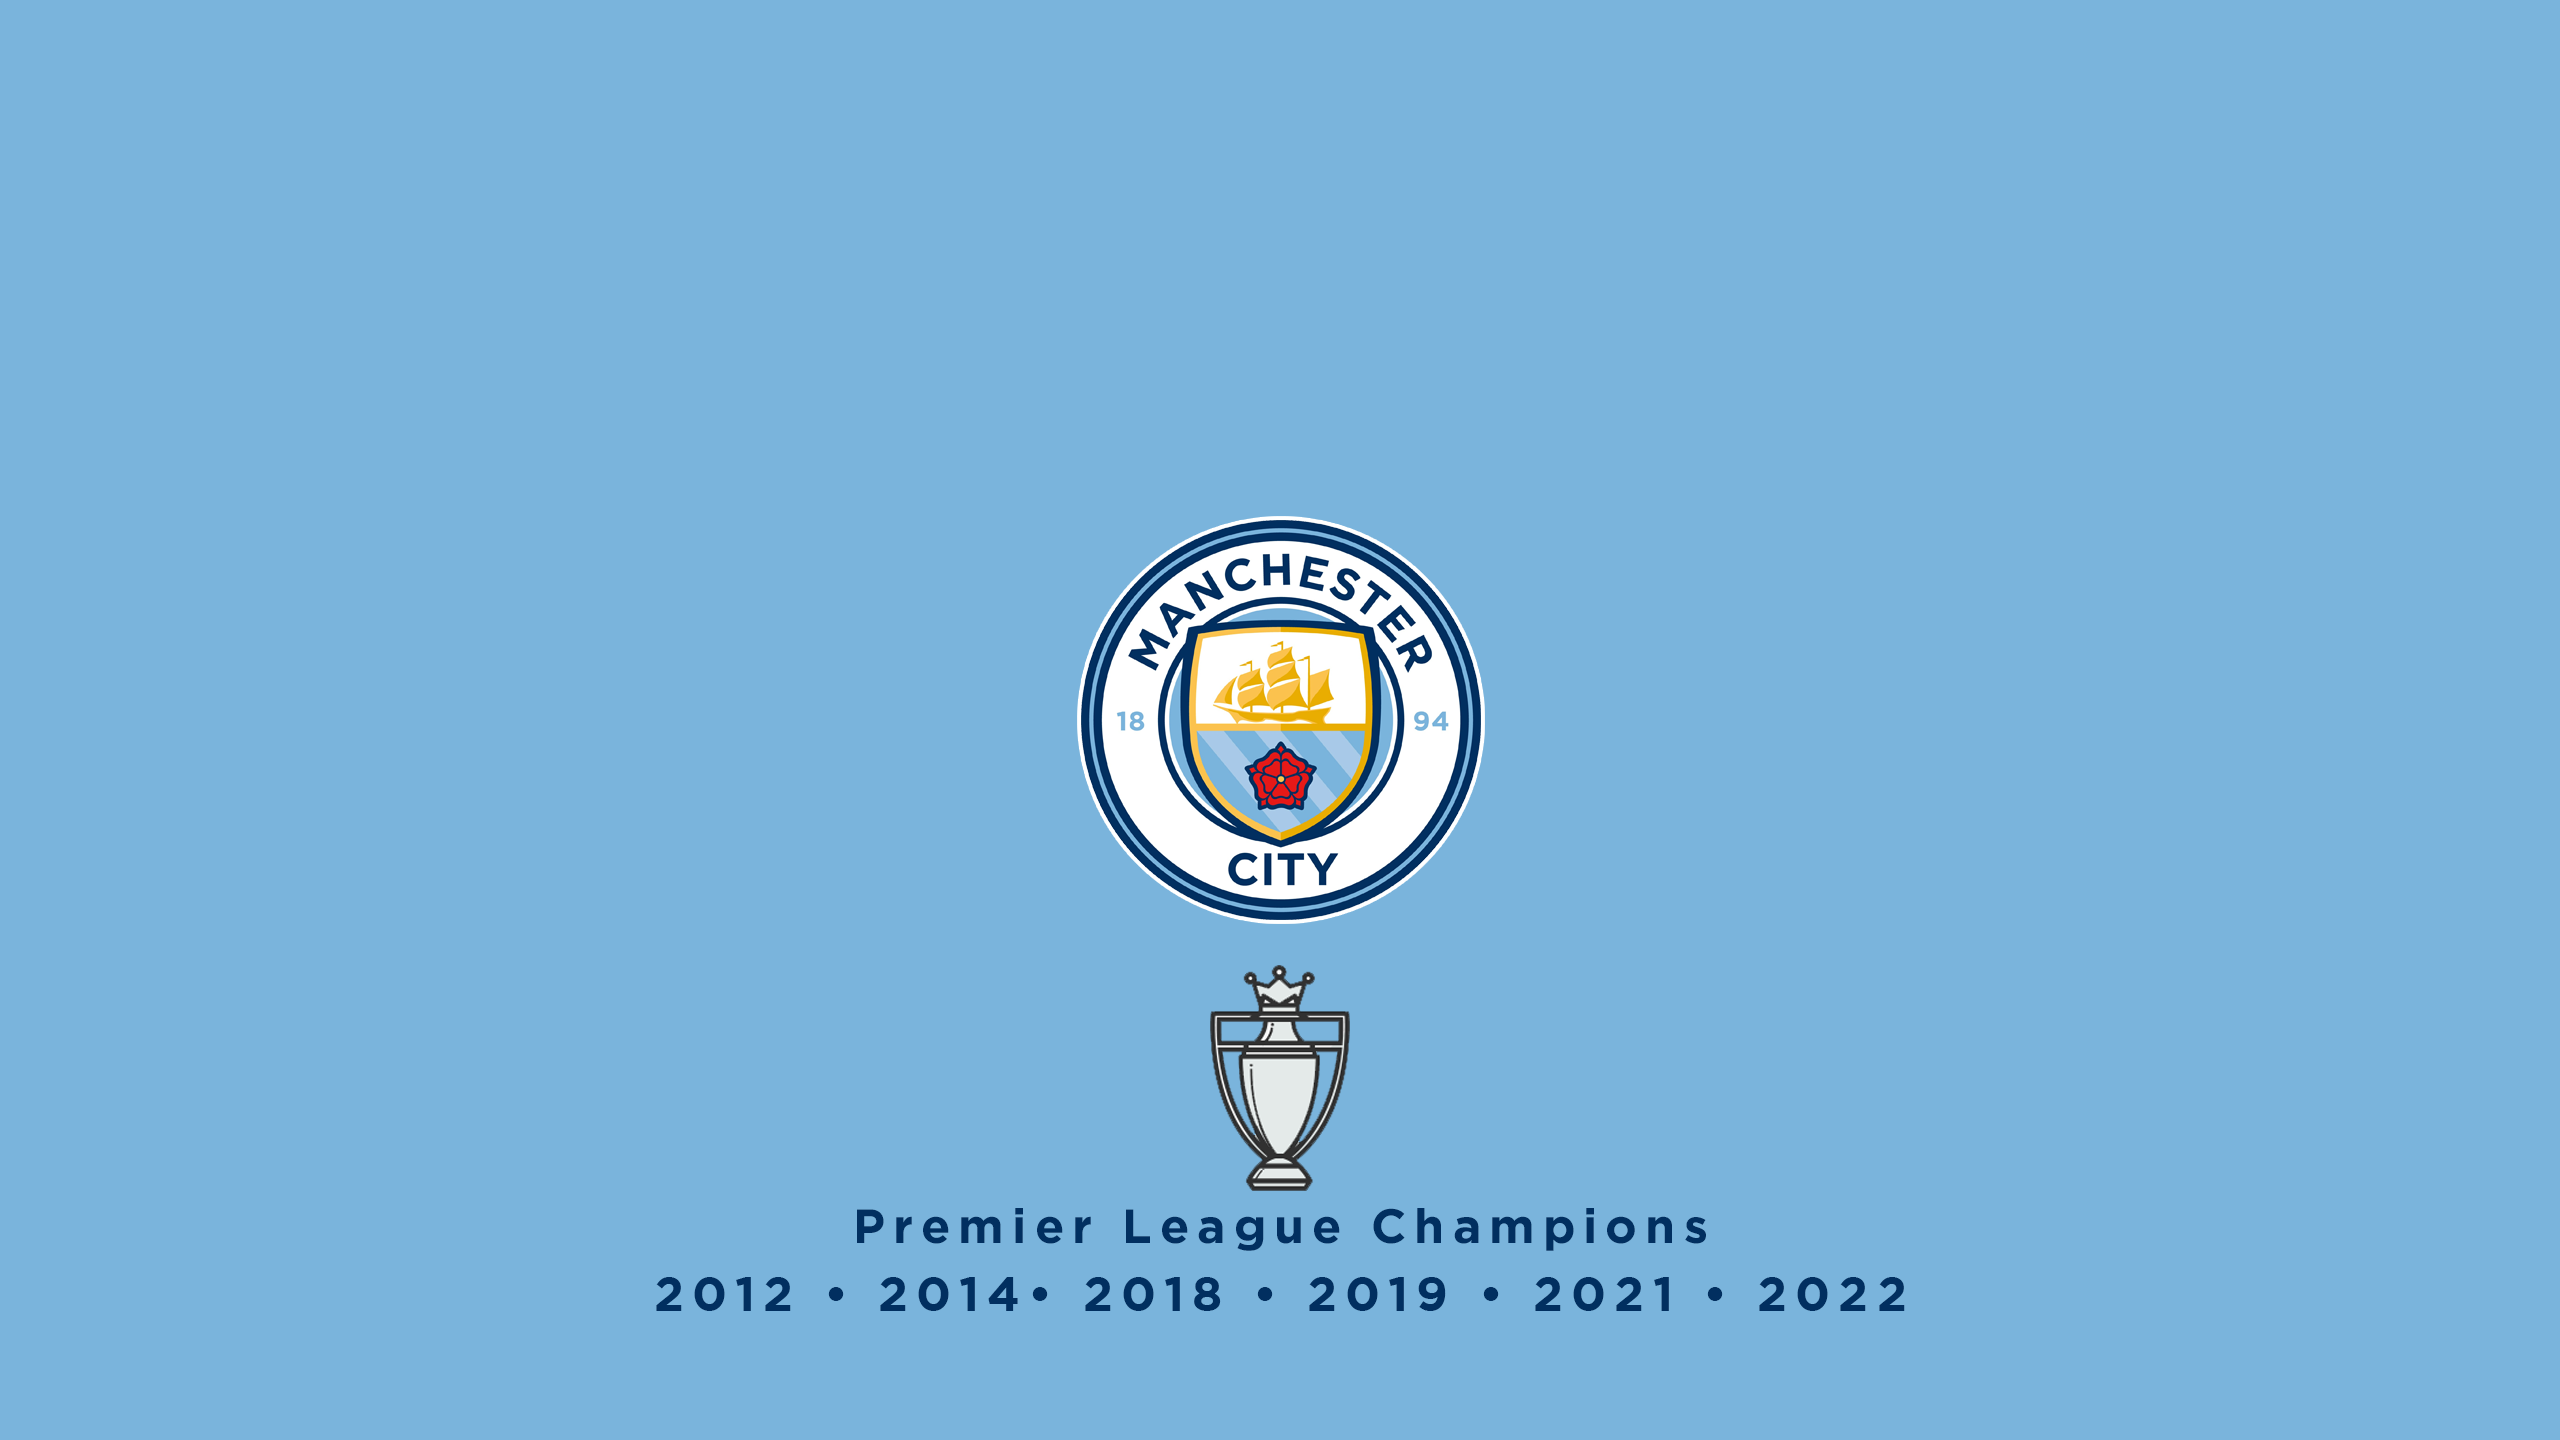 Manchester City FC - EPL Champs